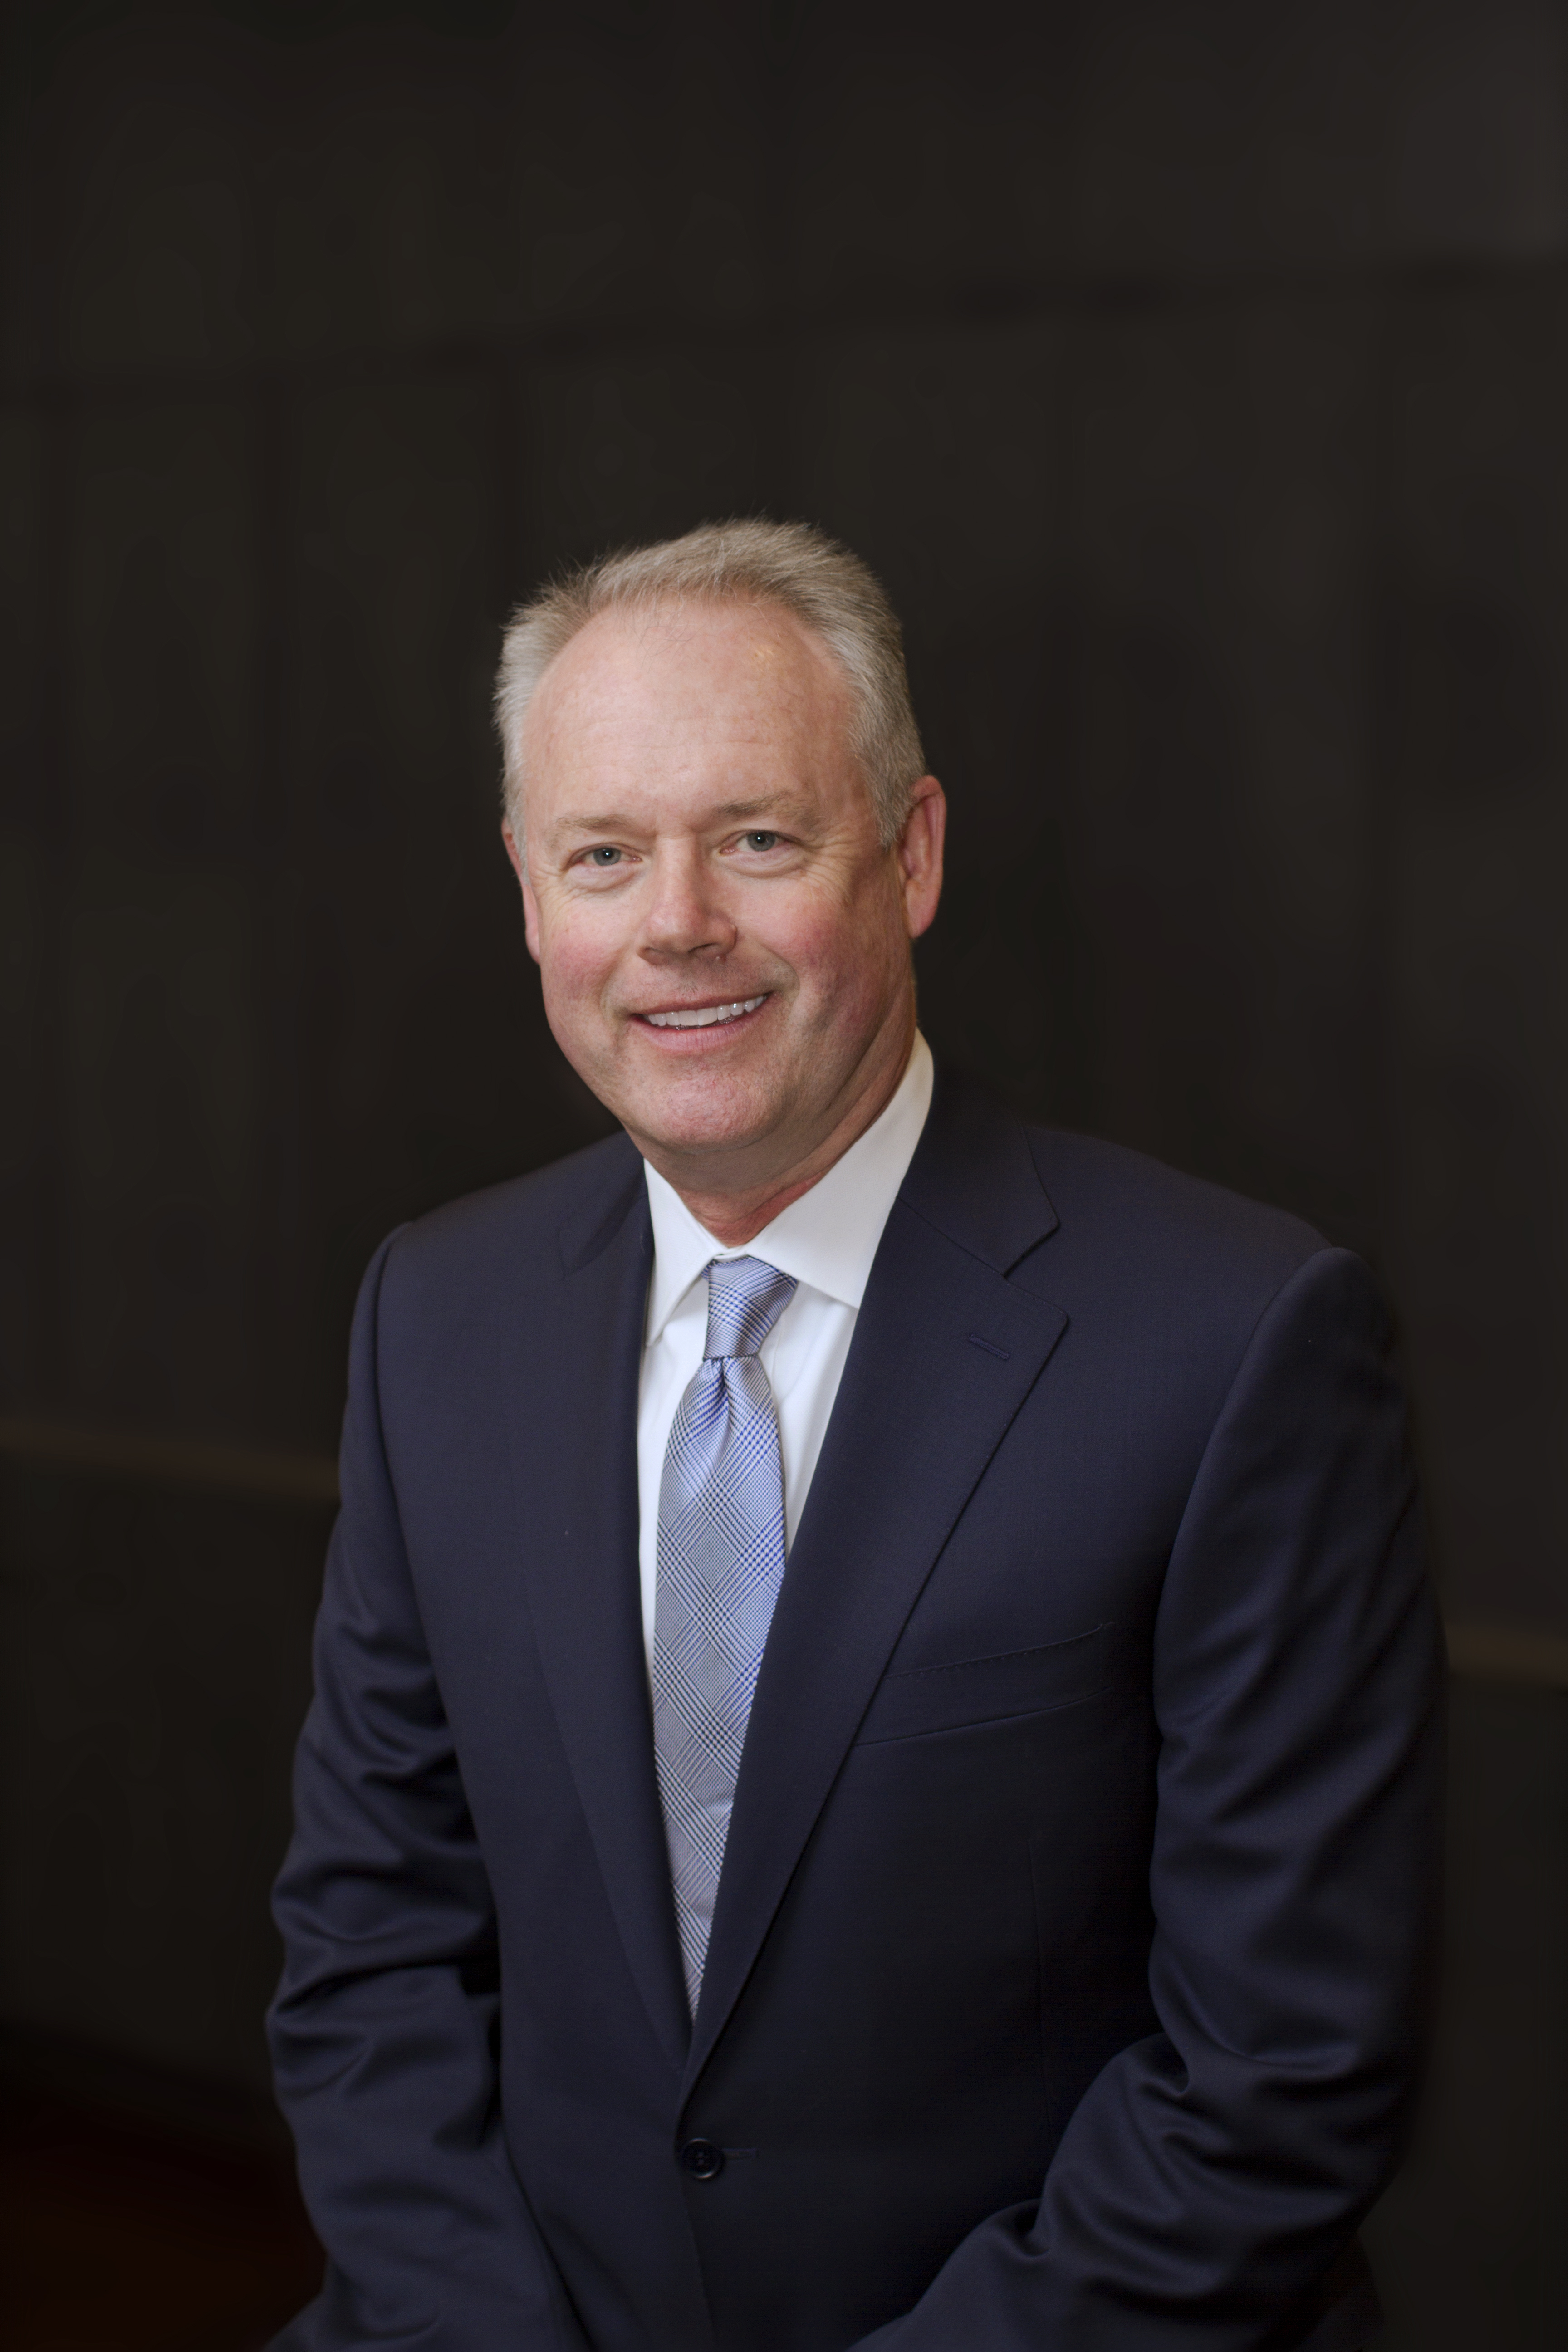 Starbucks Names Kevin Johnson President and Chief Operating